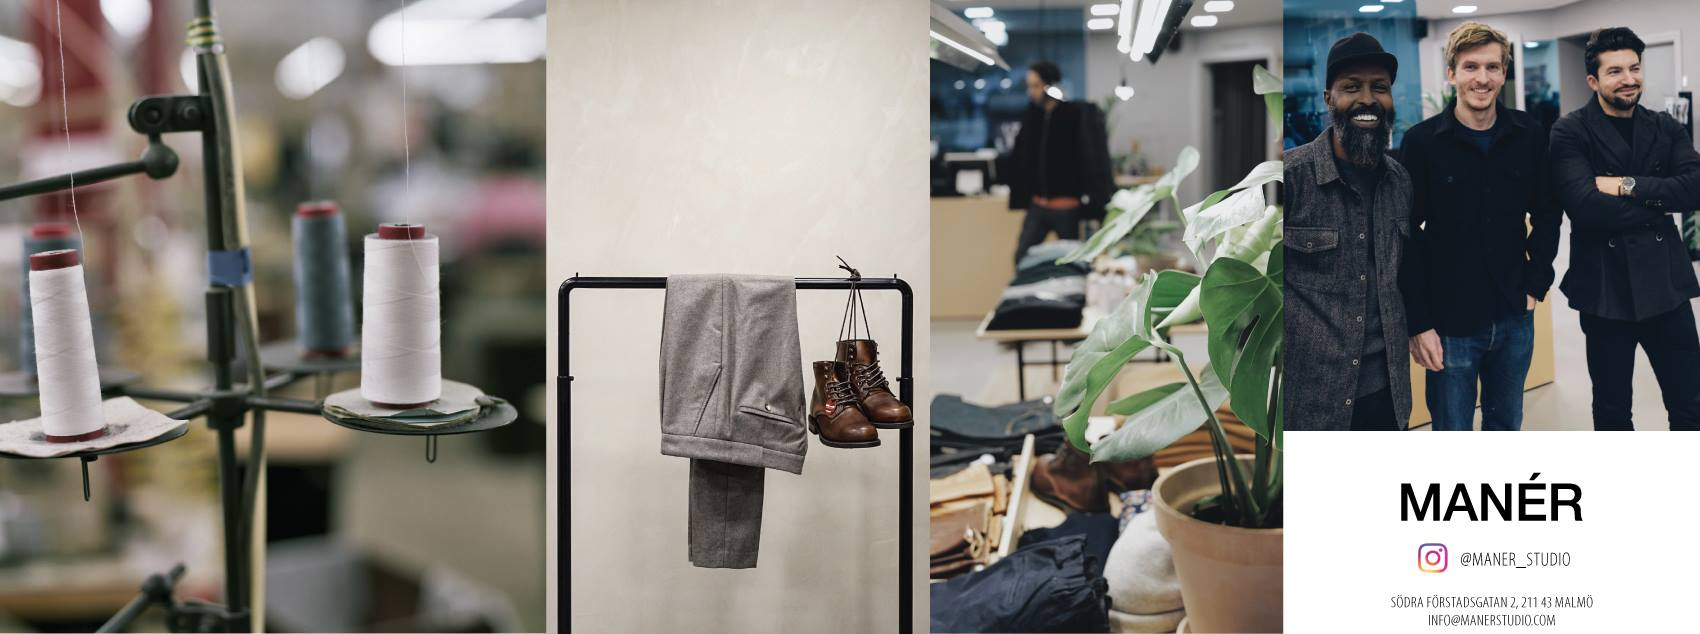 Manér Studio – Bespoke Jeans made in Malmö